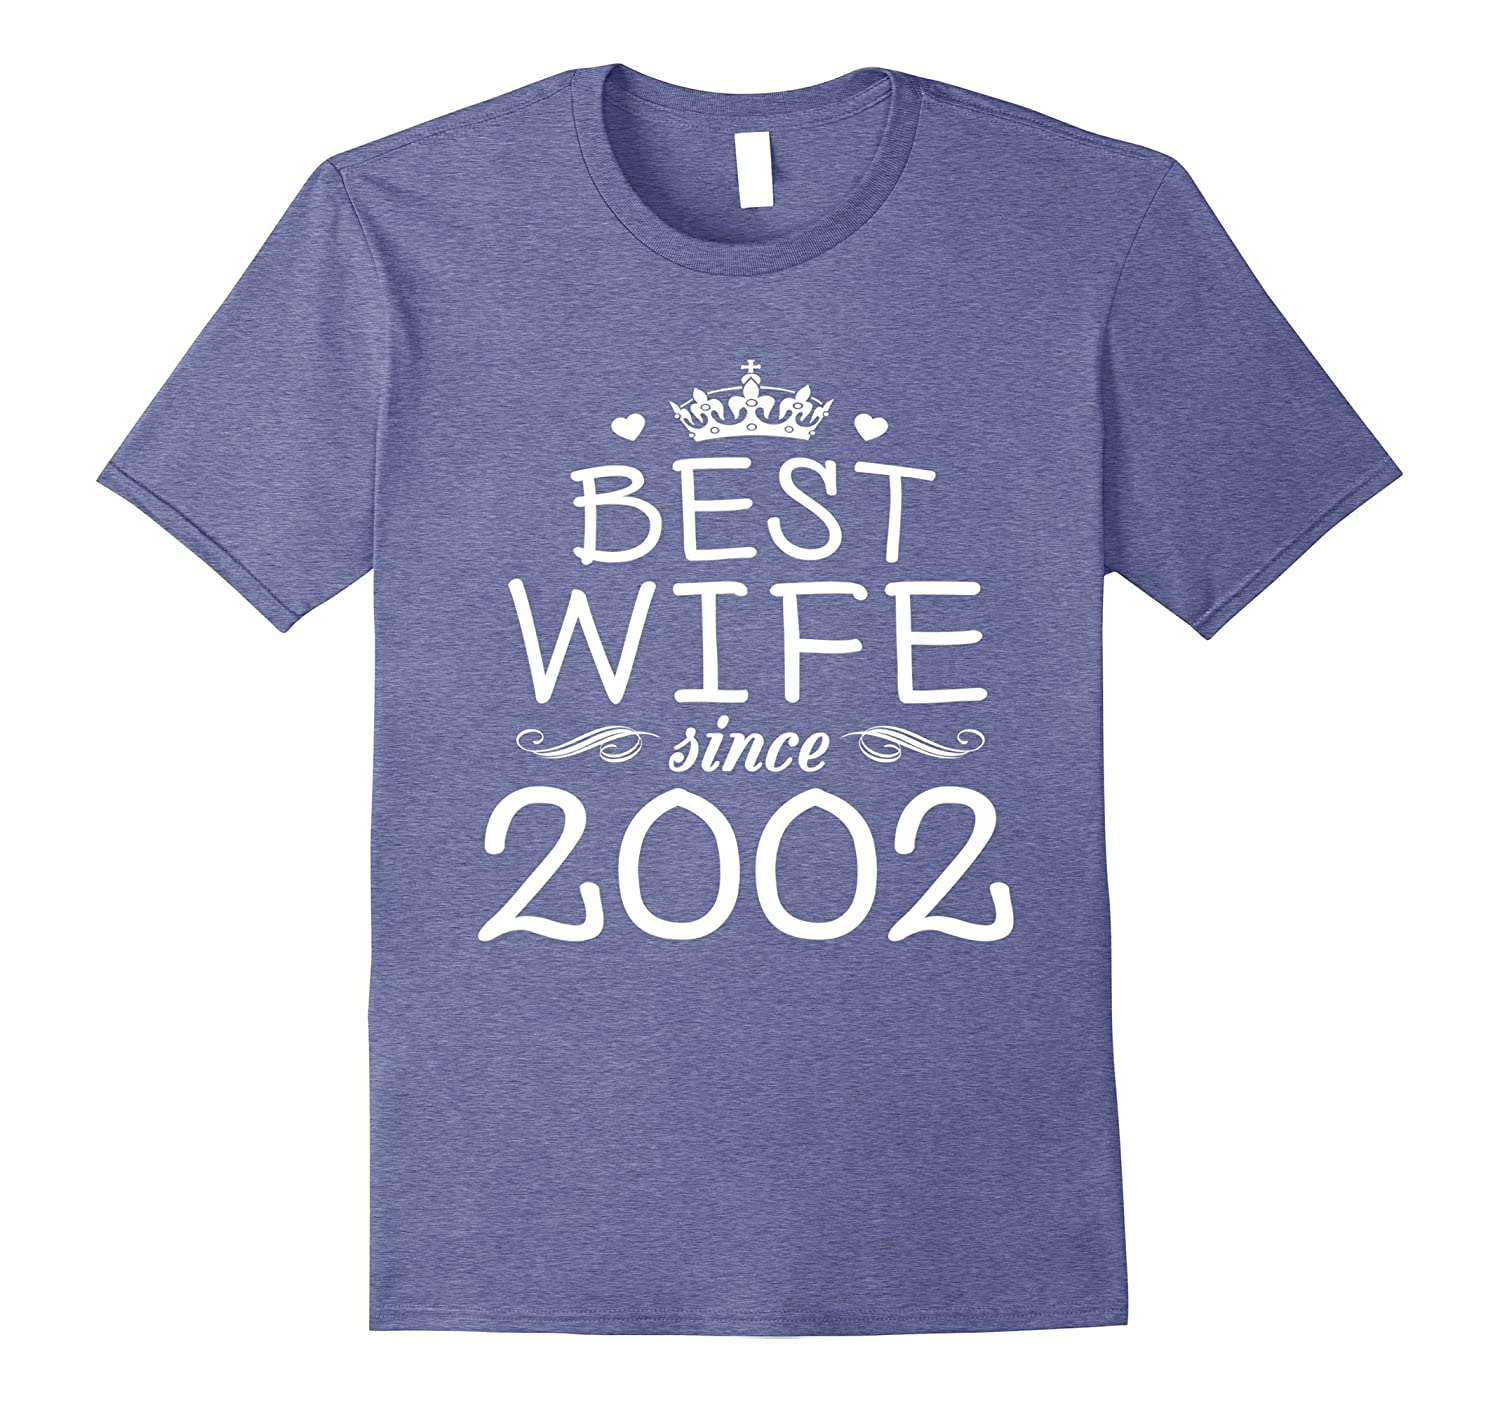 15th Wedding Anniversary Gift Ideas For Her Wife Since 2002 PL